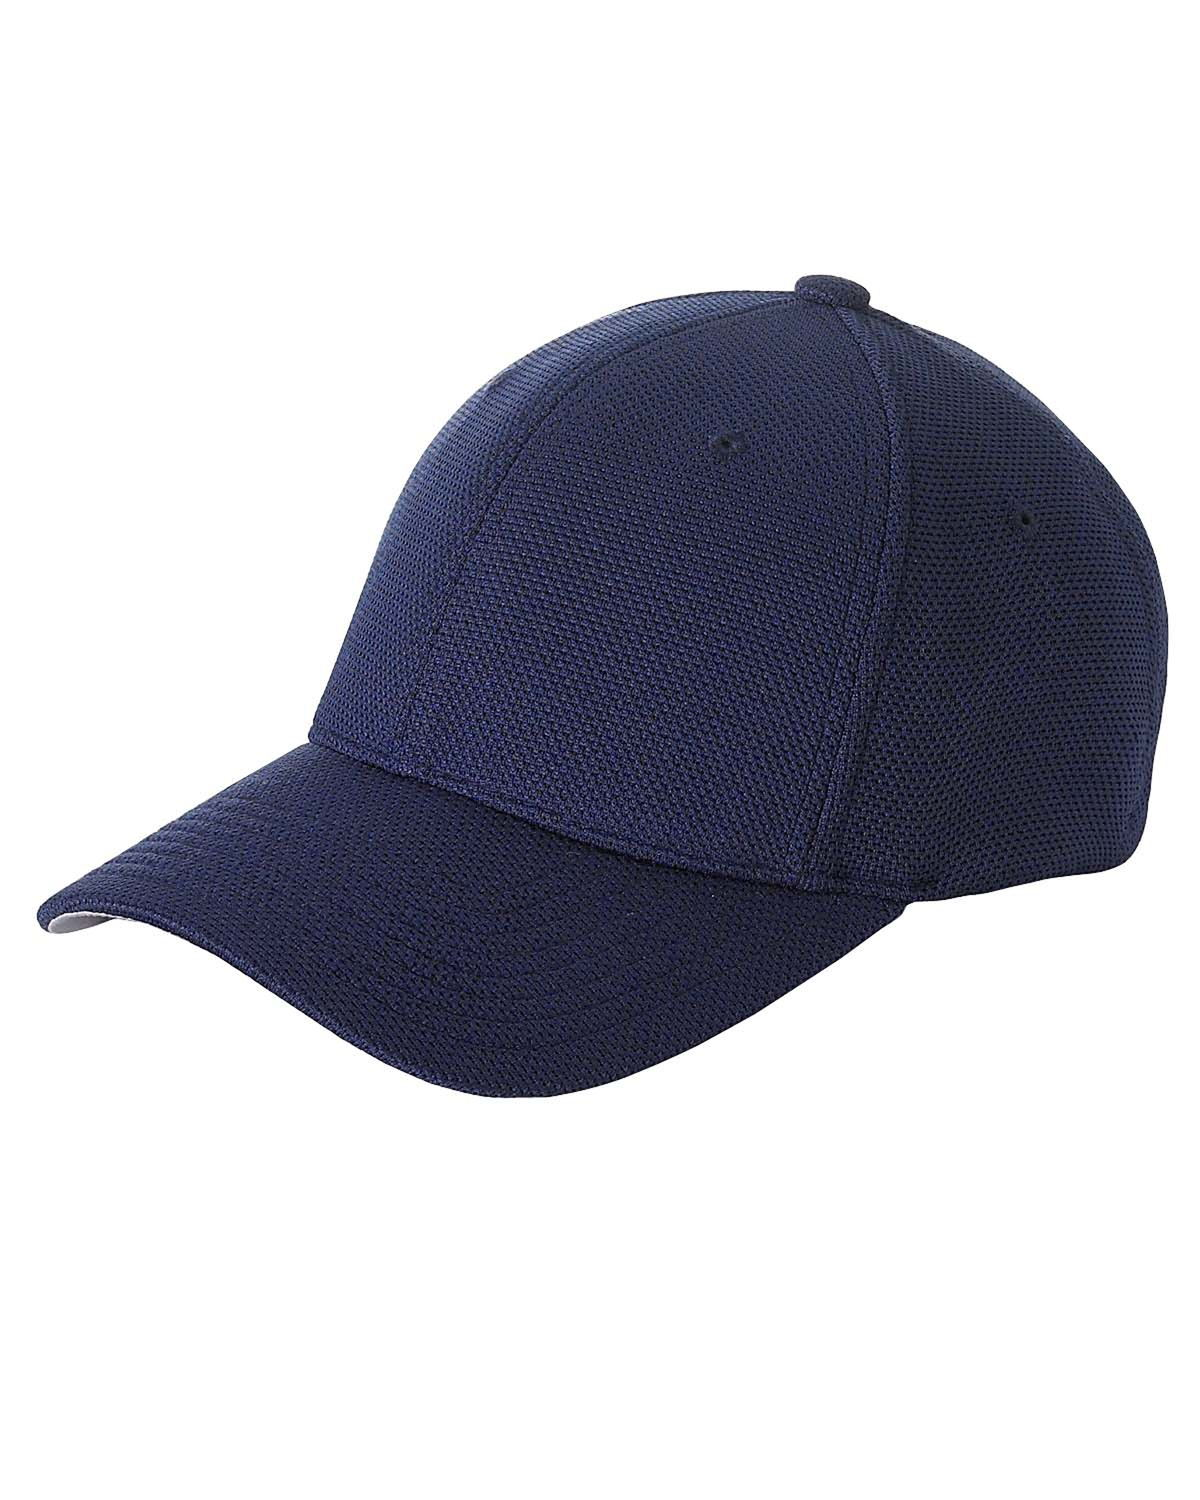 Flexfit 6577CD - Adult Cool & Dry Pique Mesh Cap